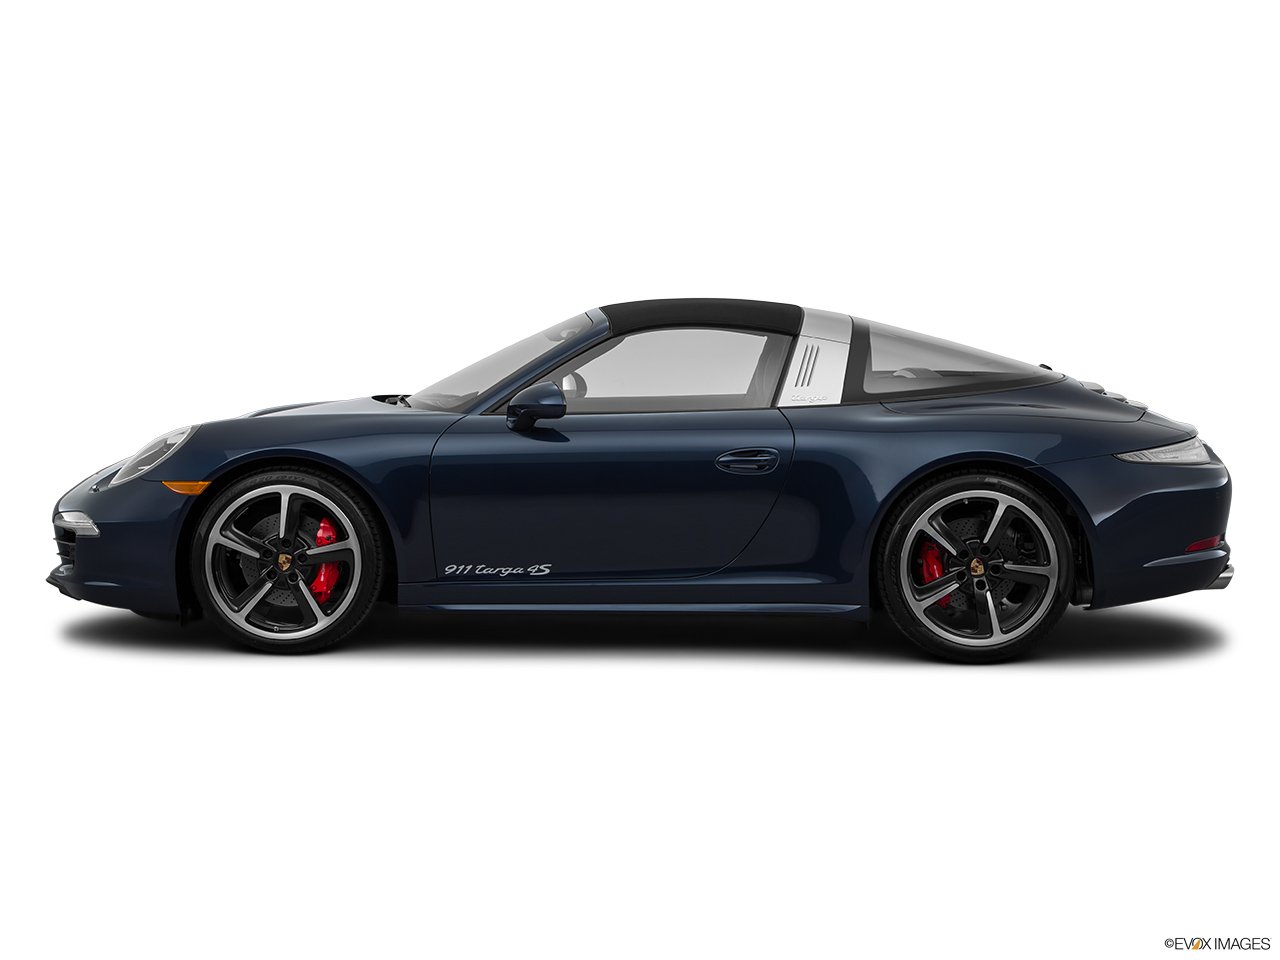 2016 Porsche 911 2 Door Targa 4 - Drivers side profile, convertible ... Cars